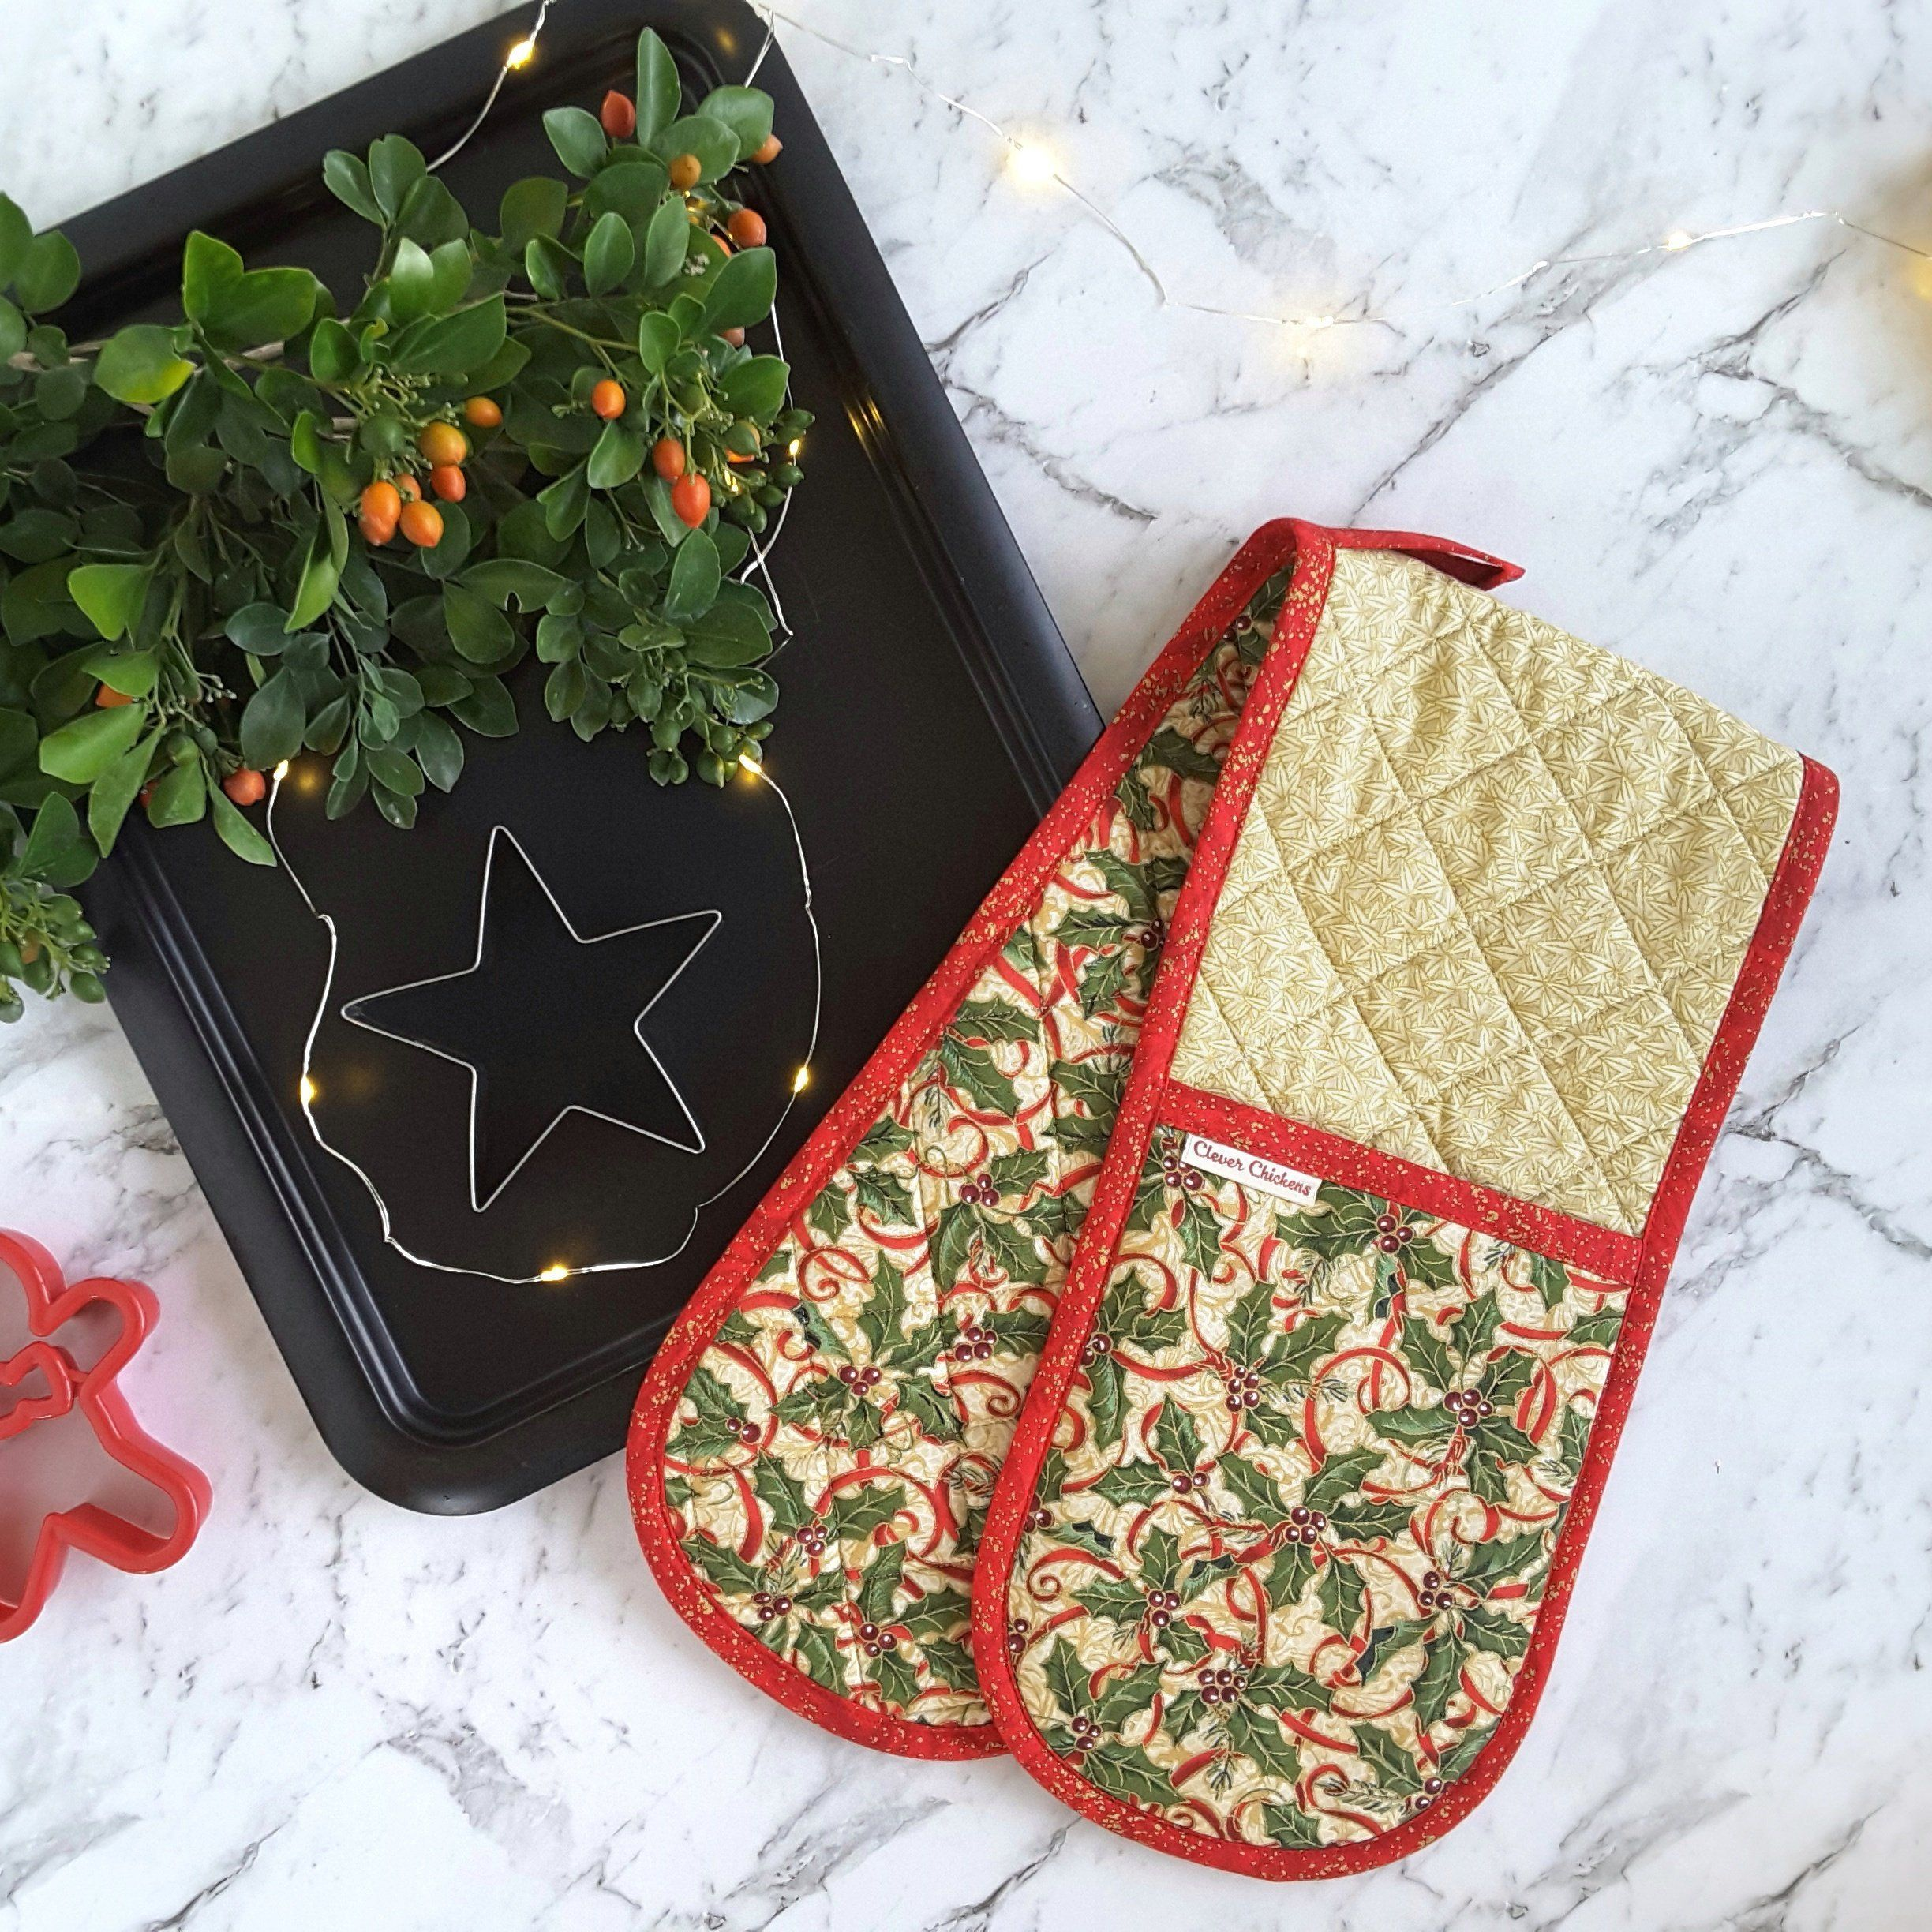 Christmas Oven Glove Holly Oven Mitt Holiday Potholders Beige Cream Red Country Christmas Home Decor Hostess